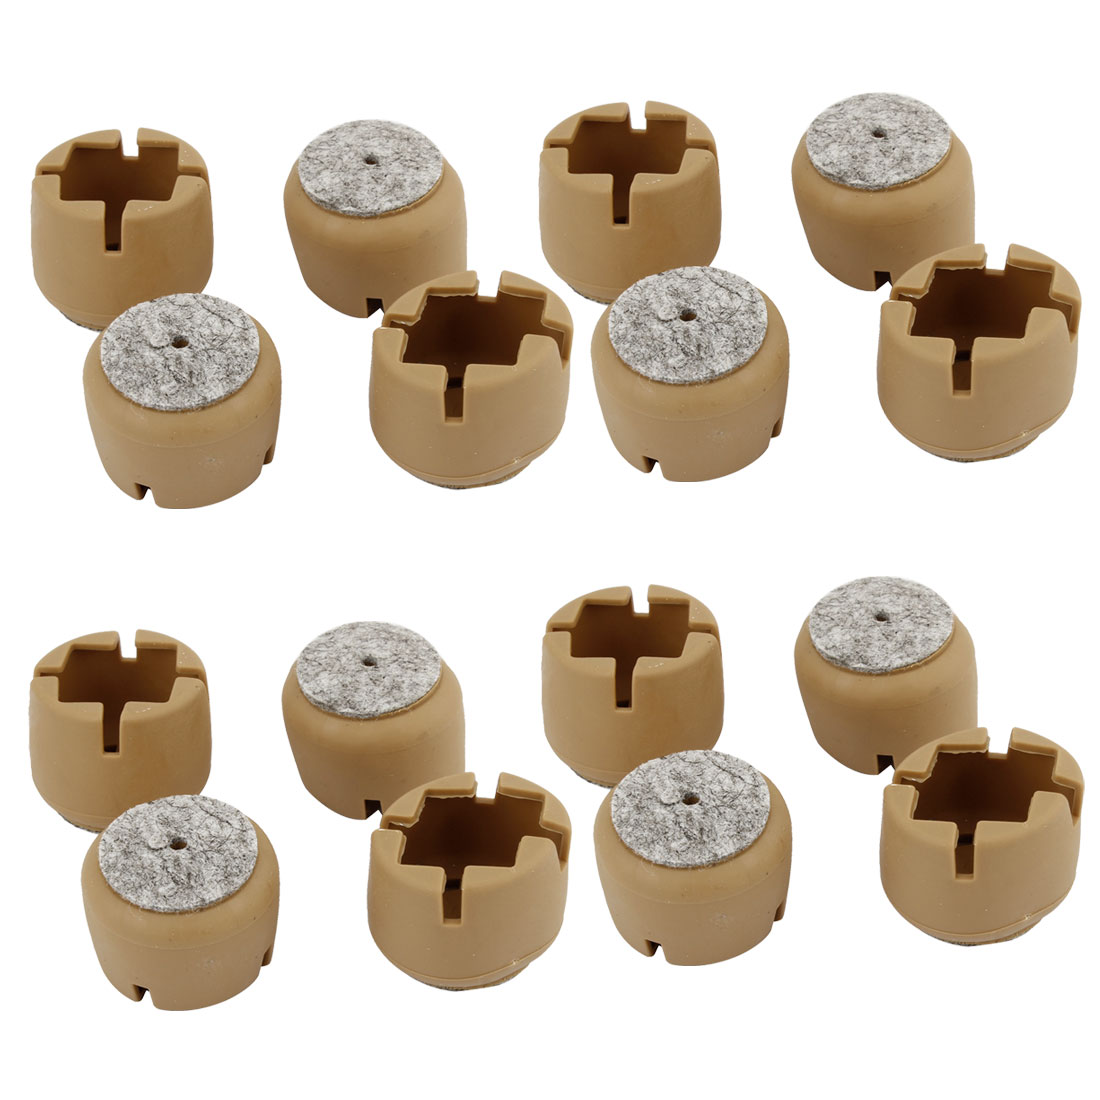 16 Pcs 33mm Dia Furniture Table Chair Leg Plastic Foot Covers Caps